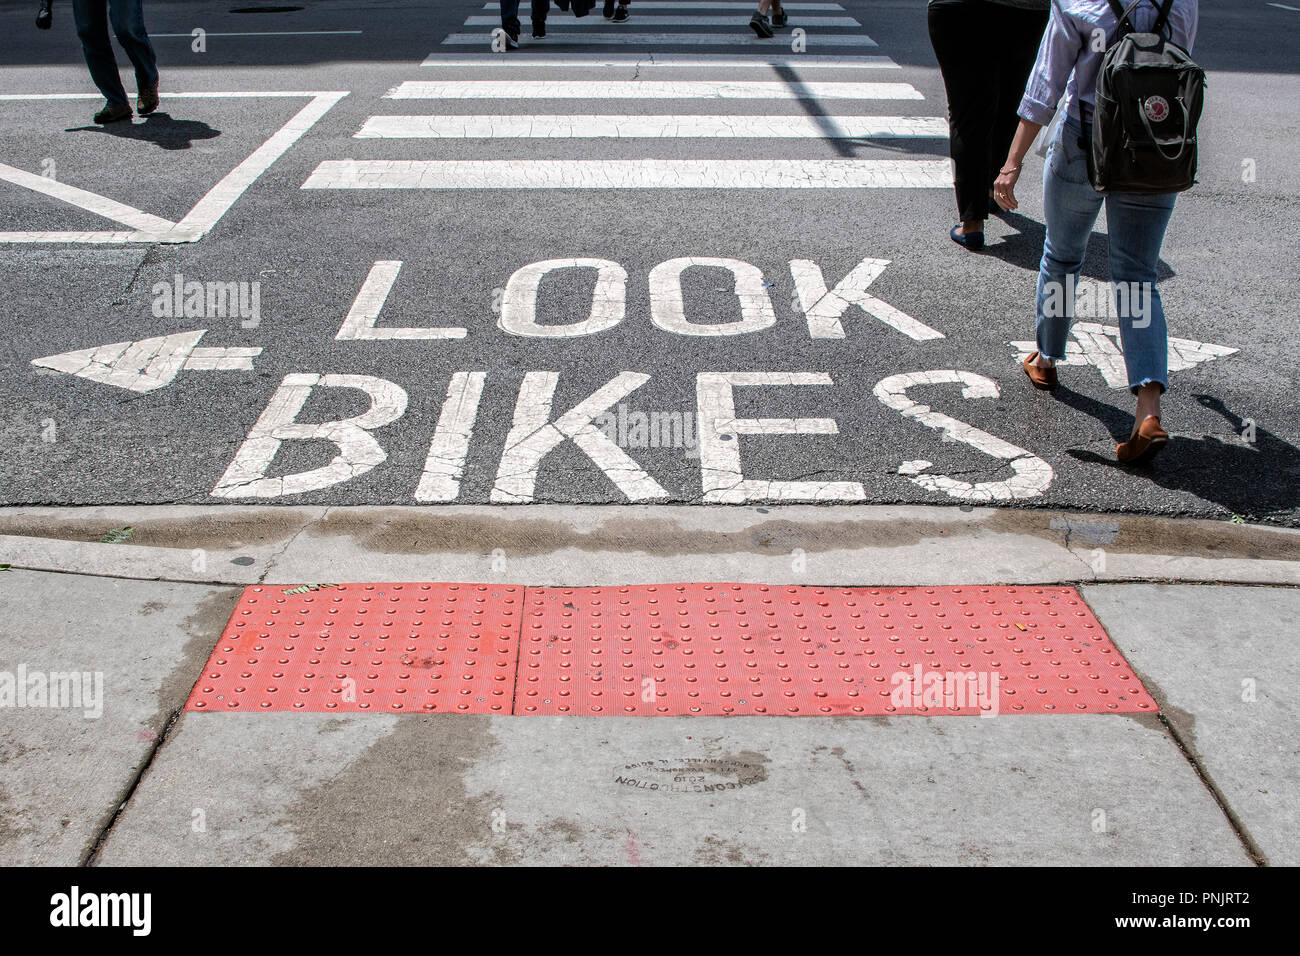 Sign for bikers, Downtown Chicago, IL. - Stock Image